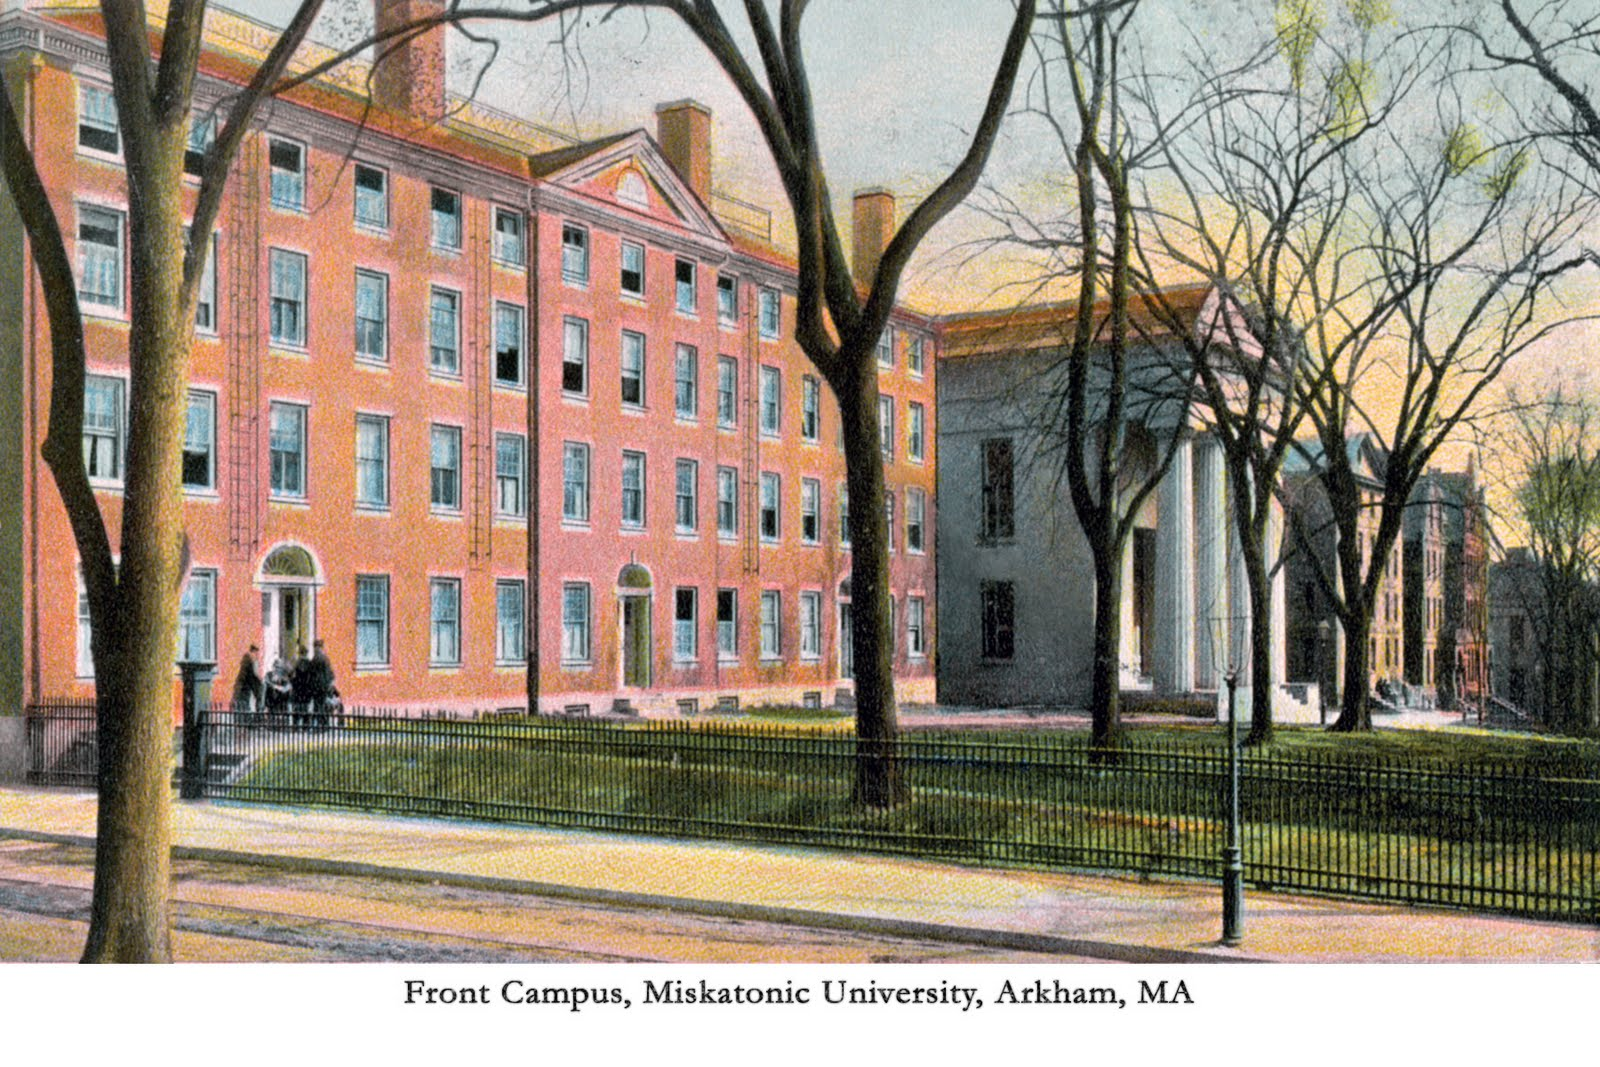 Miskatonic university front campus view